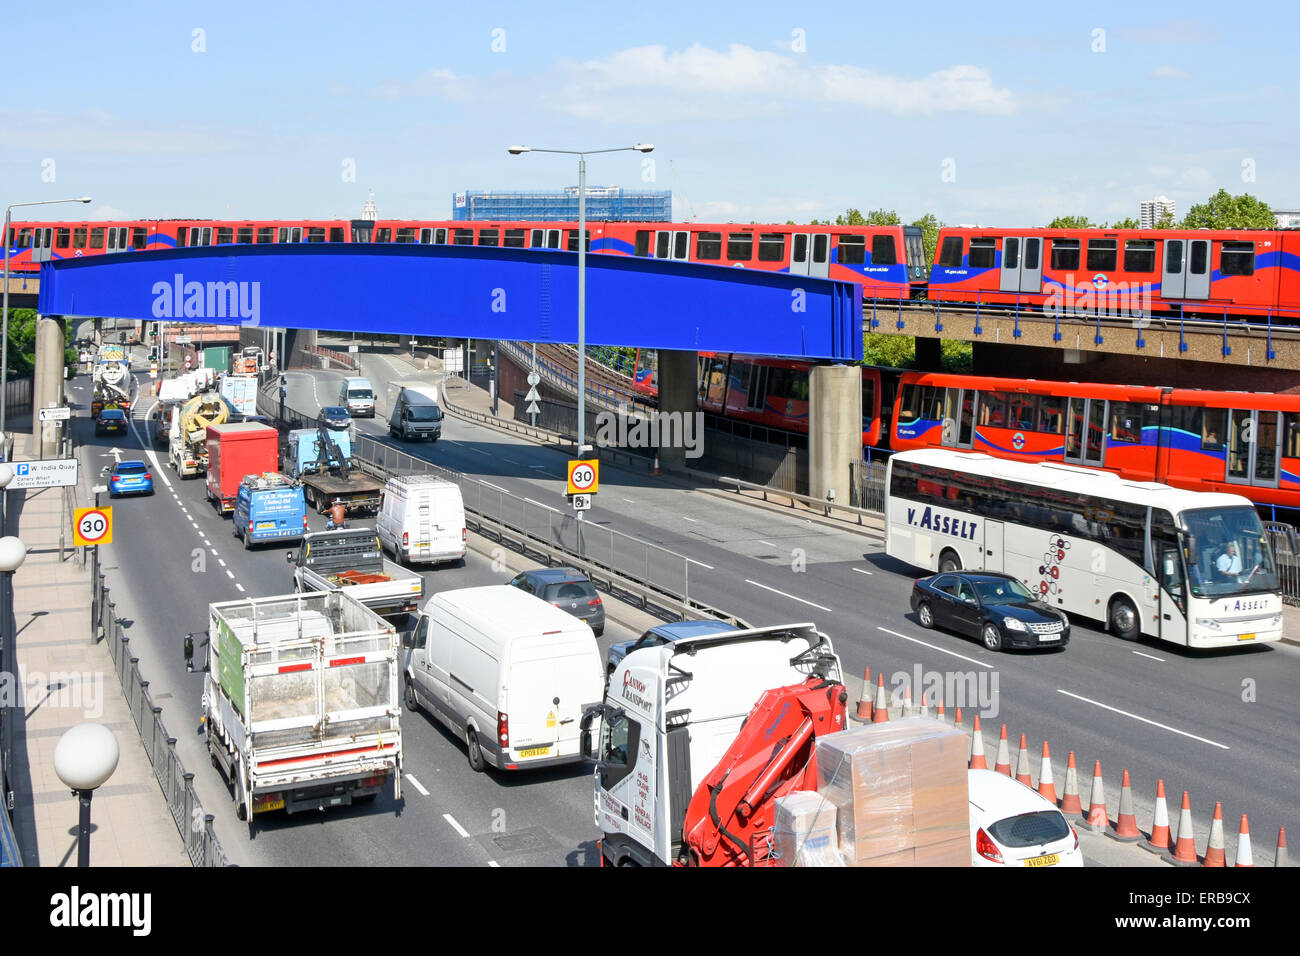 Traffic queuing to enter the Limehouse link road tunnel with DLR train on bridge Poplar East London England UK - Stock Image